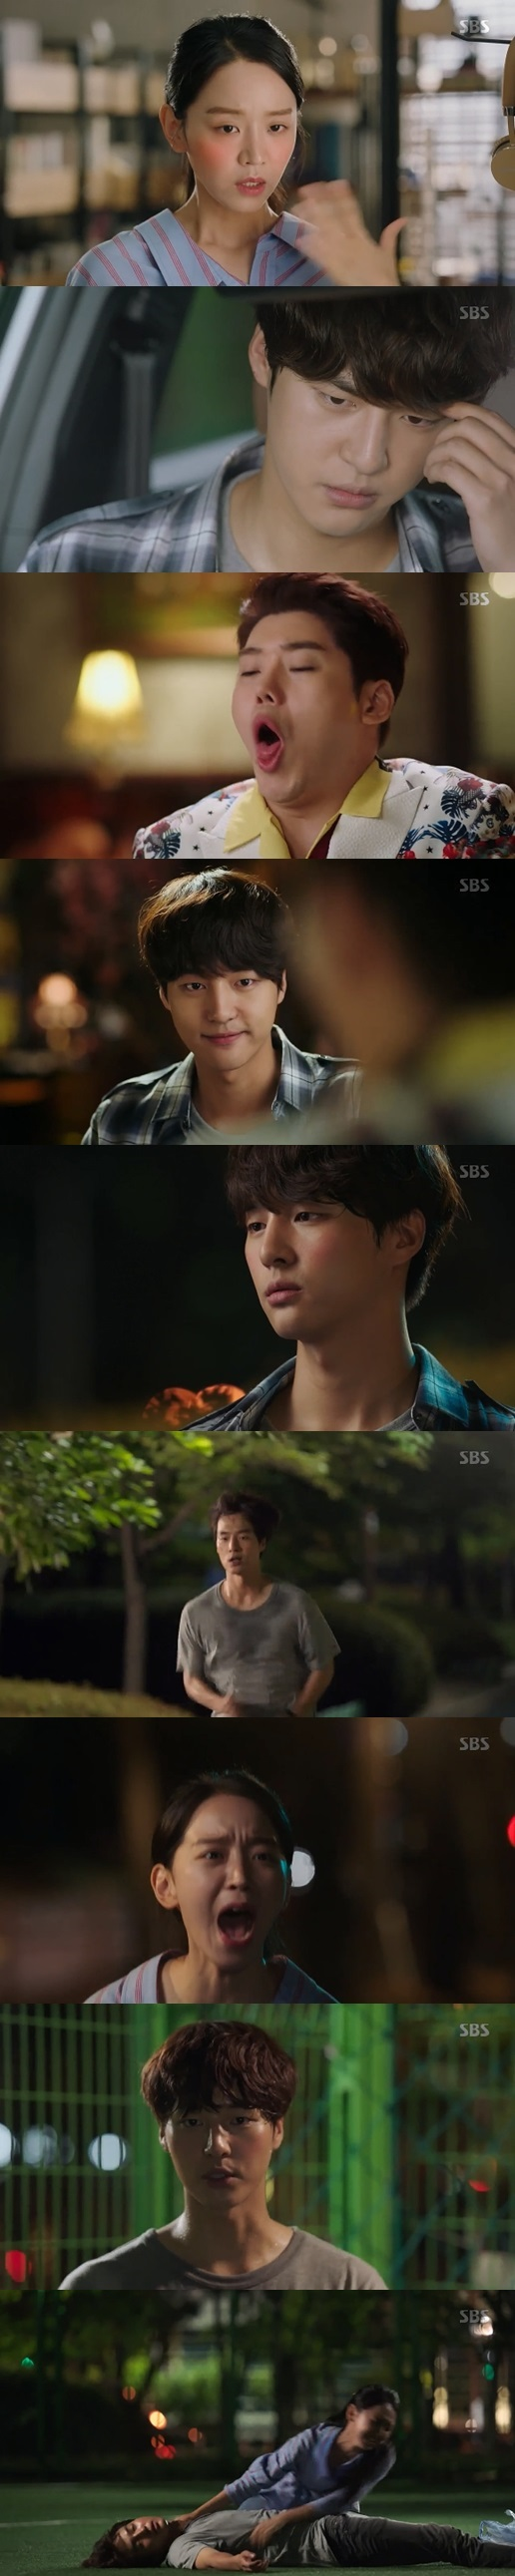 <p>Yang Se-jongs heart deepened towards actor Shin Hye-sun Its thirty seventeen.</p><p>In the 13th and 14th SBS monthly fire drama broadcasted on Sunday night, SBS Moonlight Drama Screenwriter Cho Seong-hi Directed Joswon In the case of closer approaching each others past, frost (Shin Hye-sun), Ball Uzin (Yang Se-jong) was drawn.</p><p>On this day the ball Uujin cuts Onion When shedding tears When approaching the frost Pungyoto broke the atmosphere by Onion and broke the atmosphere and decided to laugh. Wooh flew to Ball Uzin as It is not fortunate as a result of Onion, and it was honestly enviable to see him playing Linkin (Wang support) director, I was able to play with a beautiful dress, and I could feel honest feelings Tell her, sorry for the ball Uzin.</p><p>The frost when I went to work the next day covered the face I was ashamed of by recalling that Ball Uzin watched his ball and watched it. Gun Hui (Jung Yoo Jin) was puzzled by the appearance of the ball Uzin which looks particularly bright. Ball Uzin was jealous of Client Woo Park (Kwon Hyuksu) who likes Kurofro and jammed just the two people are running.</p><p>Ball Uzin continued to bother taking out the story of the day and making a childish revenge such as putting a chile sauce to Harvey Weinstein while Park was out of seat. Dr. Park, who failed in his excellent work, was astounded and the ball Uzin got drunk because he shot Harvey Weinstein. Suddenly when I said snow in the summer, I showed an injection such as a cocktail decorative umbrella and breath back behind the tree and embarrassed Wu Frost.</p><p>Finally Ball Udin misunderstood the playing field and suddenly lay down. After all, he took home the ball Uzin who lost consciousness to the house using Rear car. I remembered all the drunkenness of my own Do not remember shame I pretended and made the wrong frost false.</p><p>Among these, Hiss noticed his heart that directed frost when doubting the ball Uzin showing a stretched appearance. He made a la